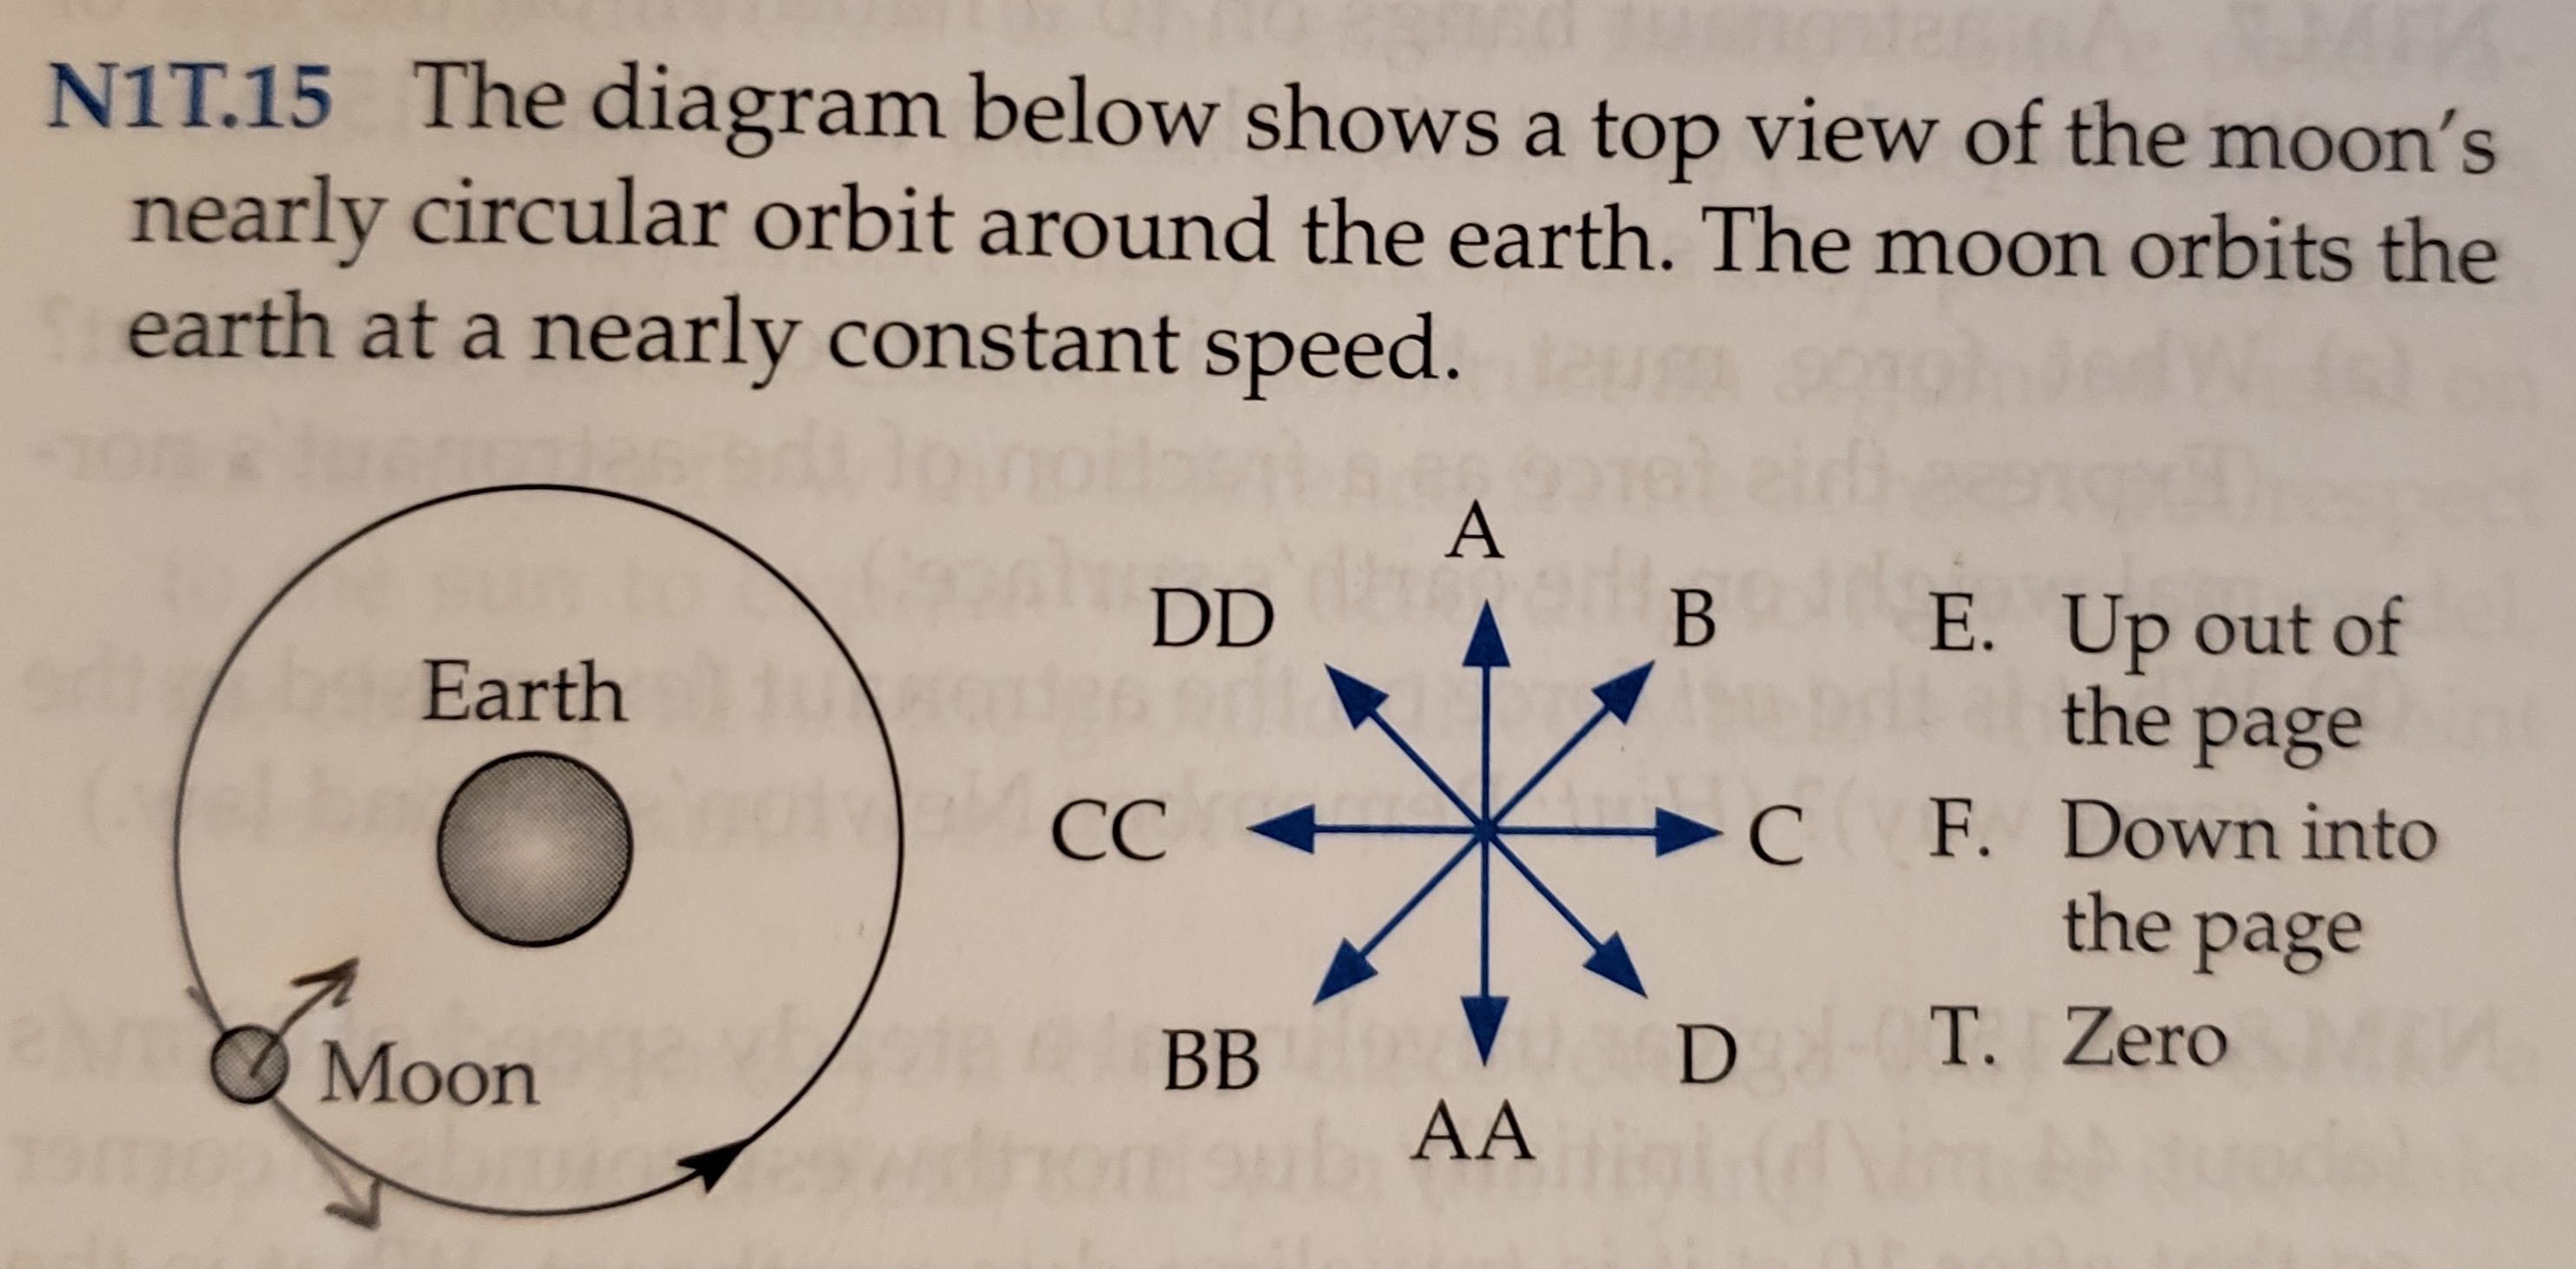 NIT.15 The diagram below shows a top view of the moon's nearly circular orbit around the earth. The moon orbits the earth at a nearly constant speed. A DD В E. Up out of the Earth page C F. Down into the page ba notoelCC aN T. Zero D ВB Moon AA